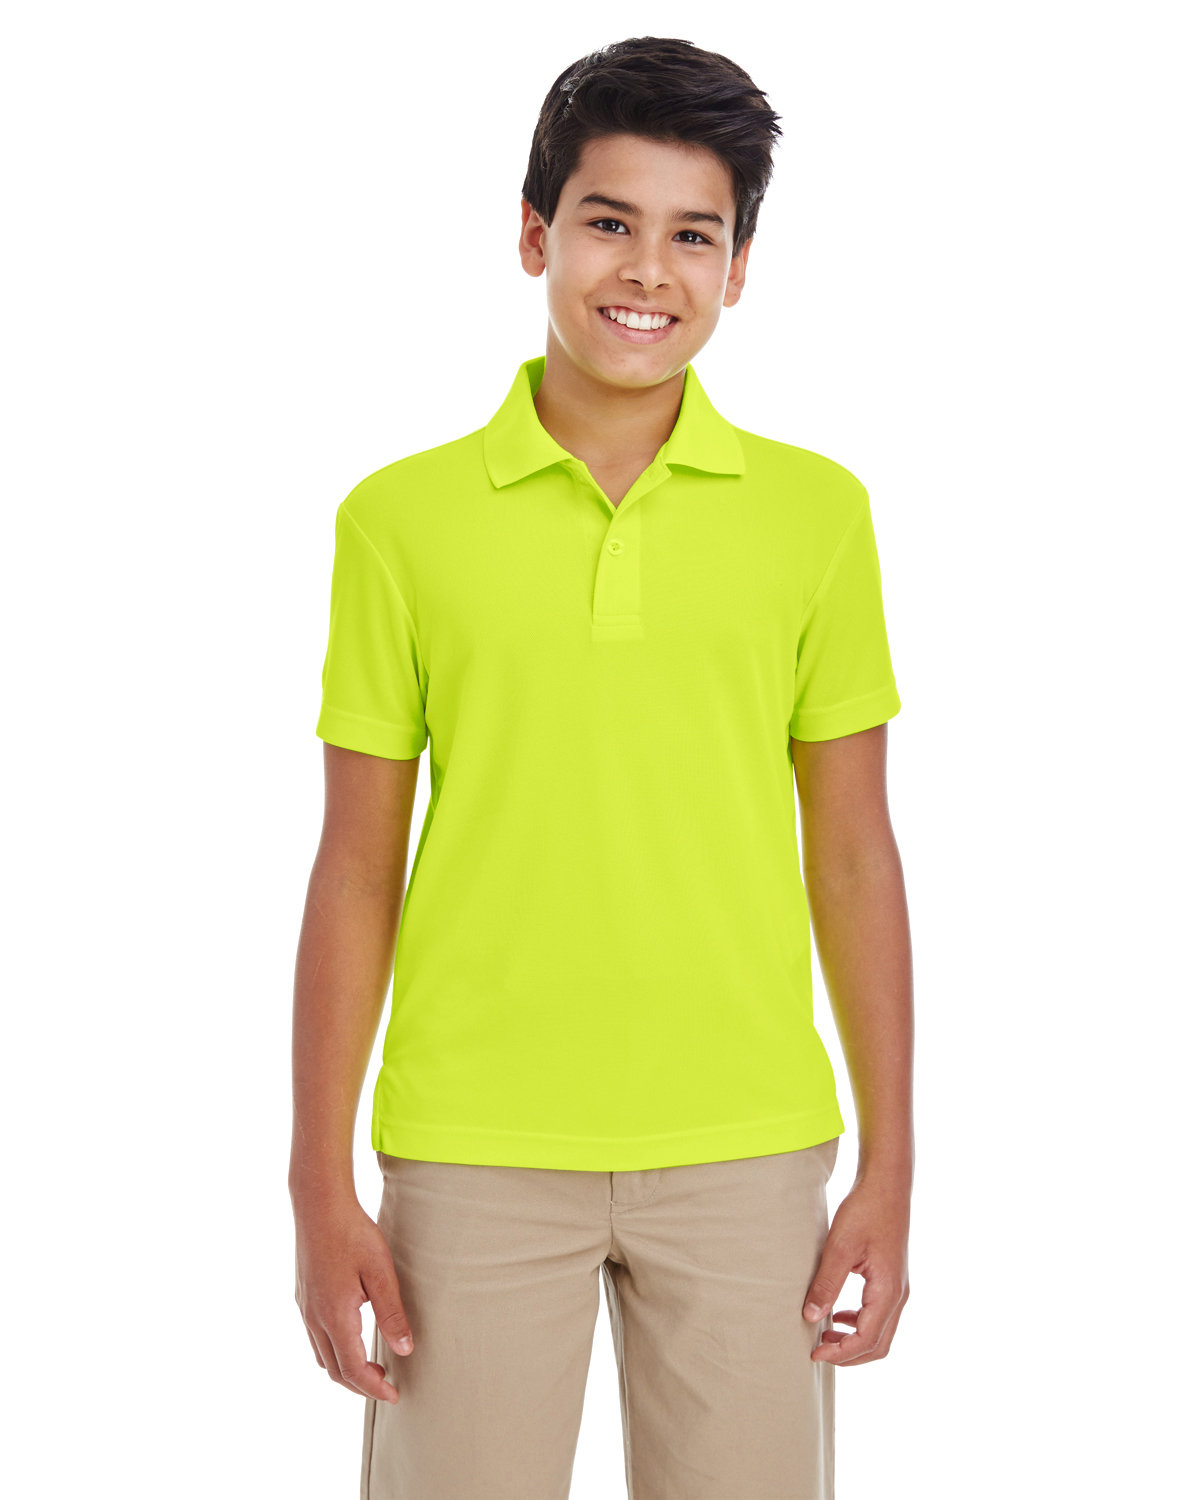 Core 365 Youth Origin Performance Piqué Polo SAFETY YELLOW